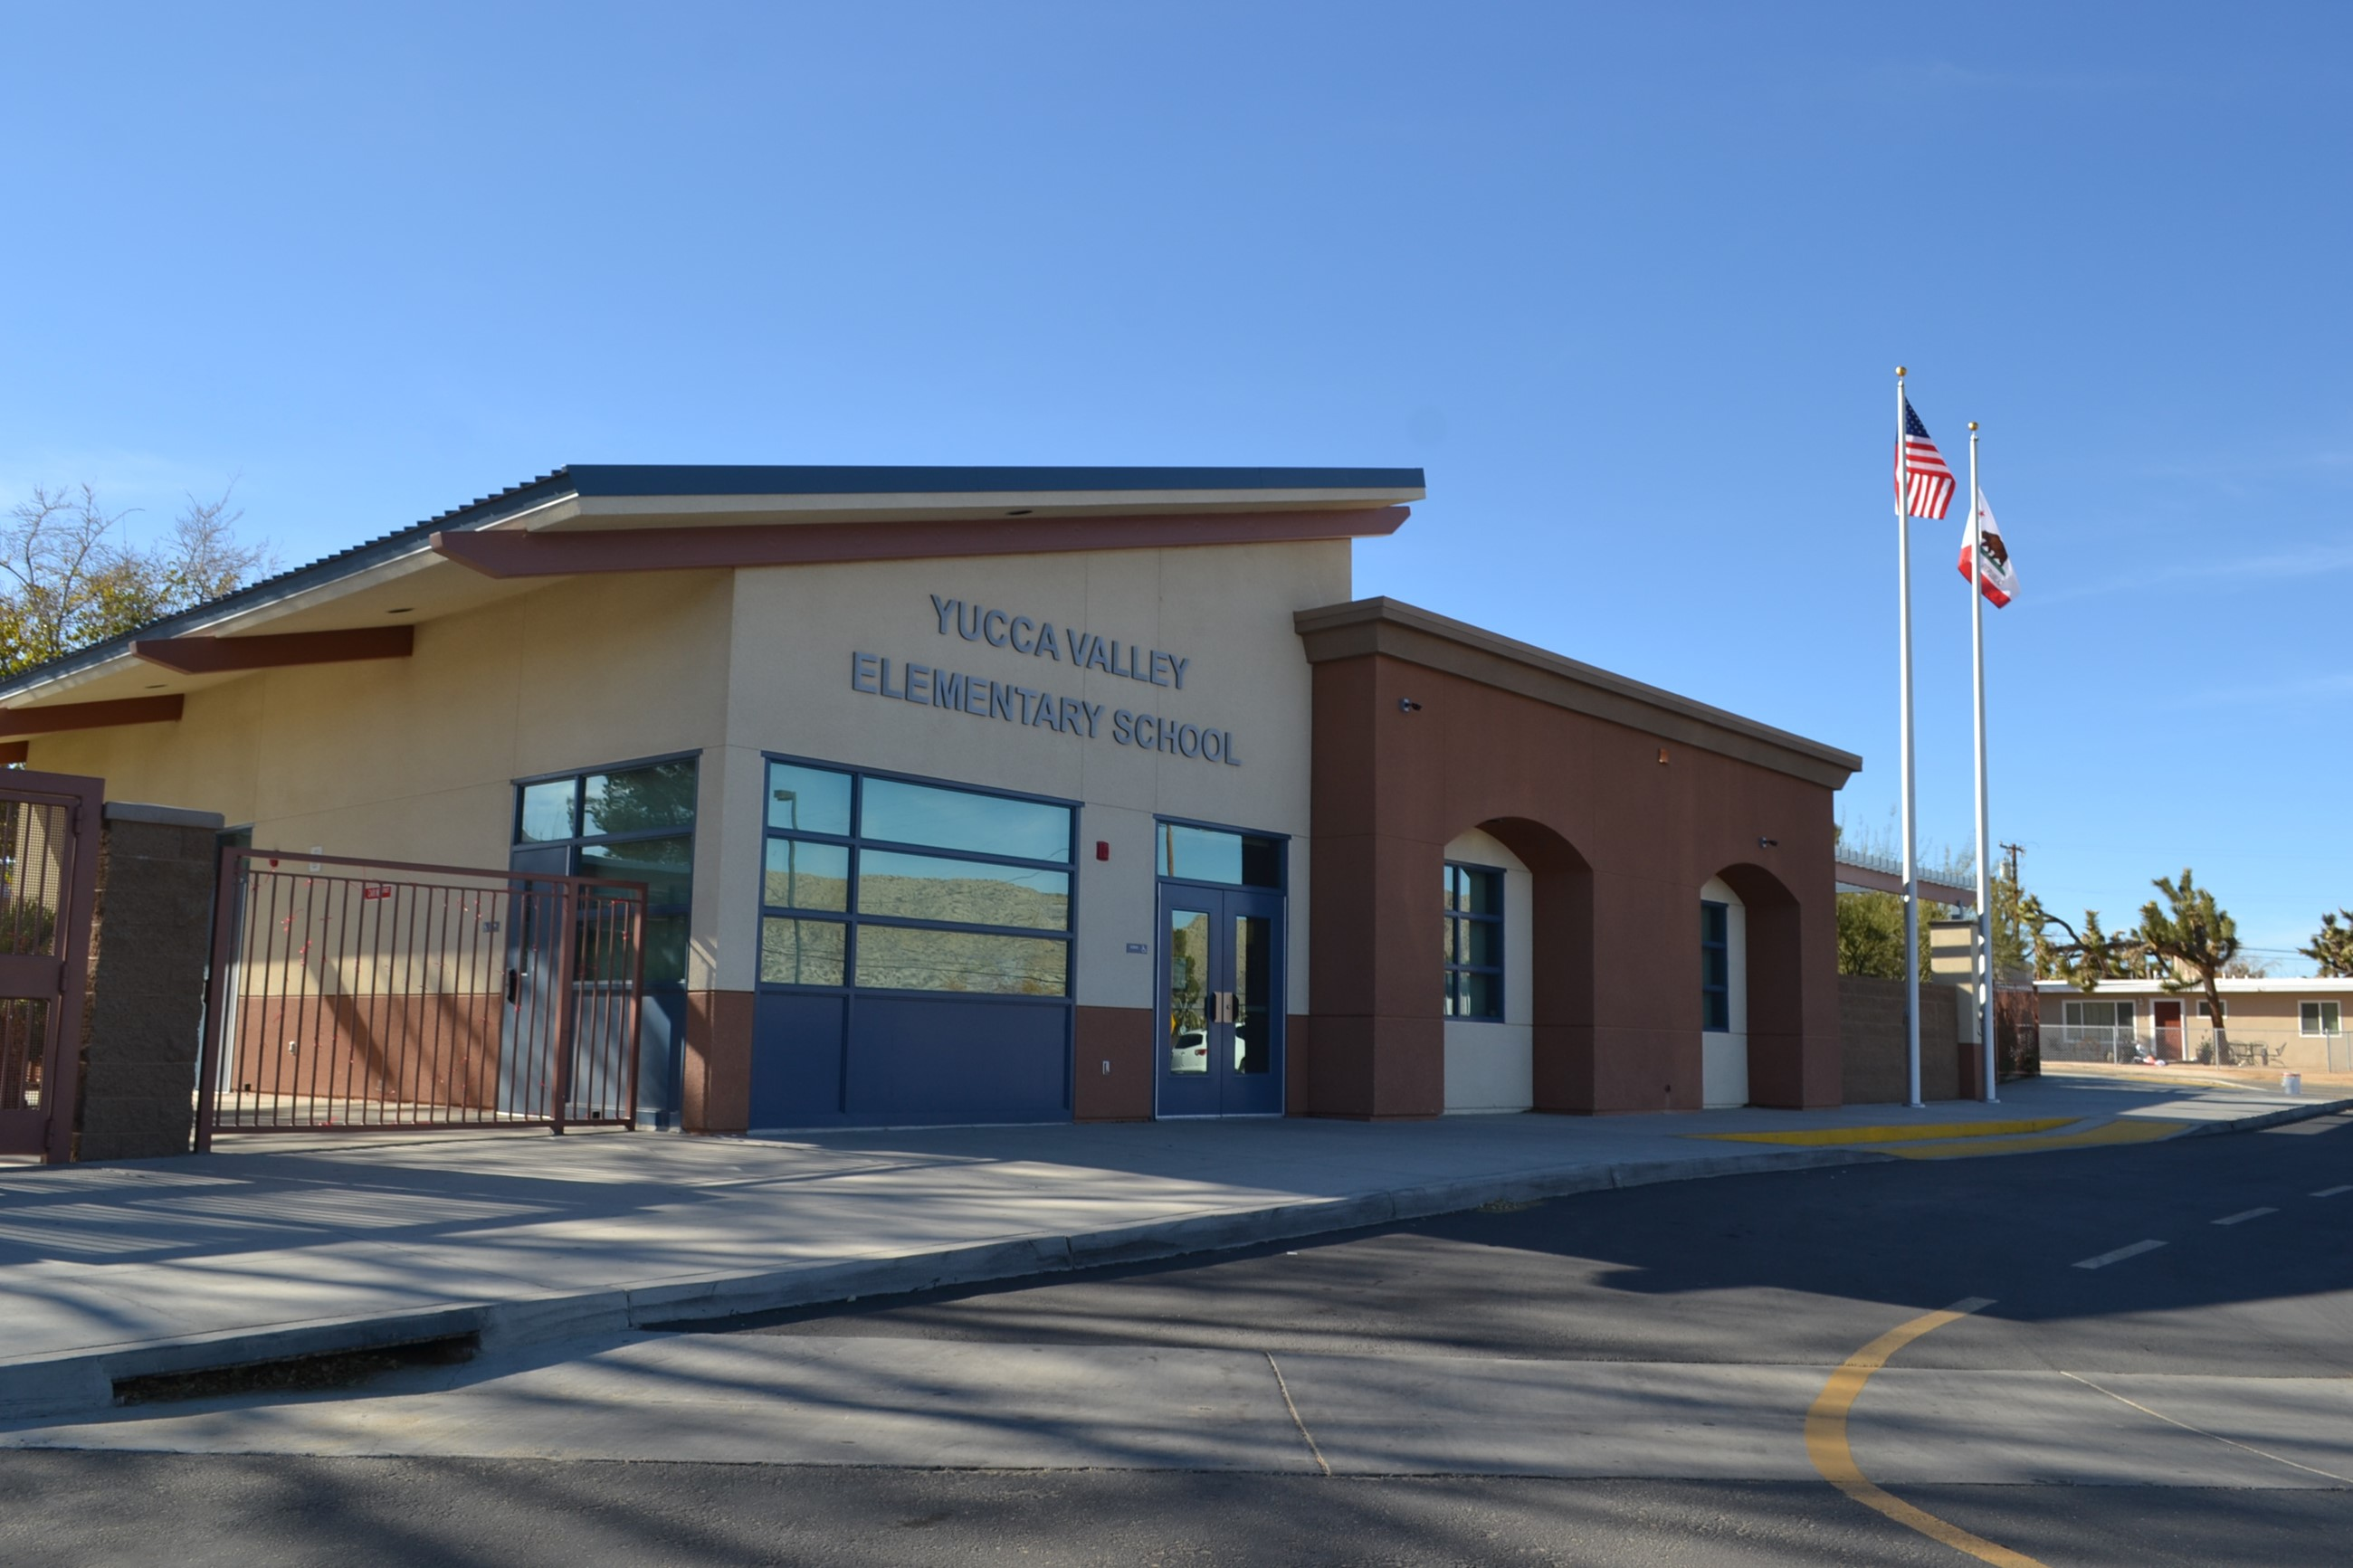 Yucca Valley Elementary School